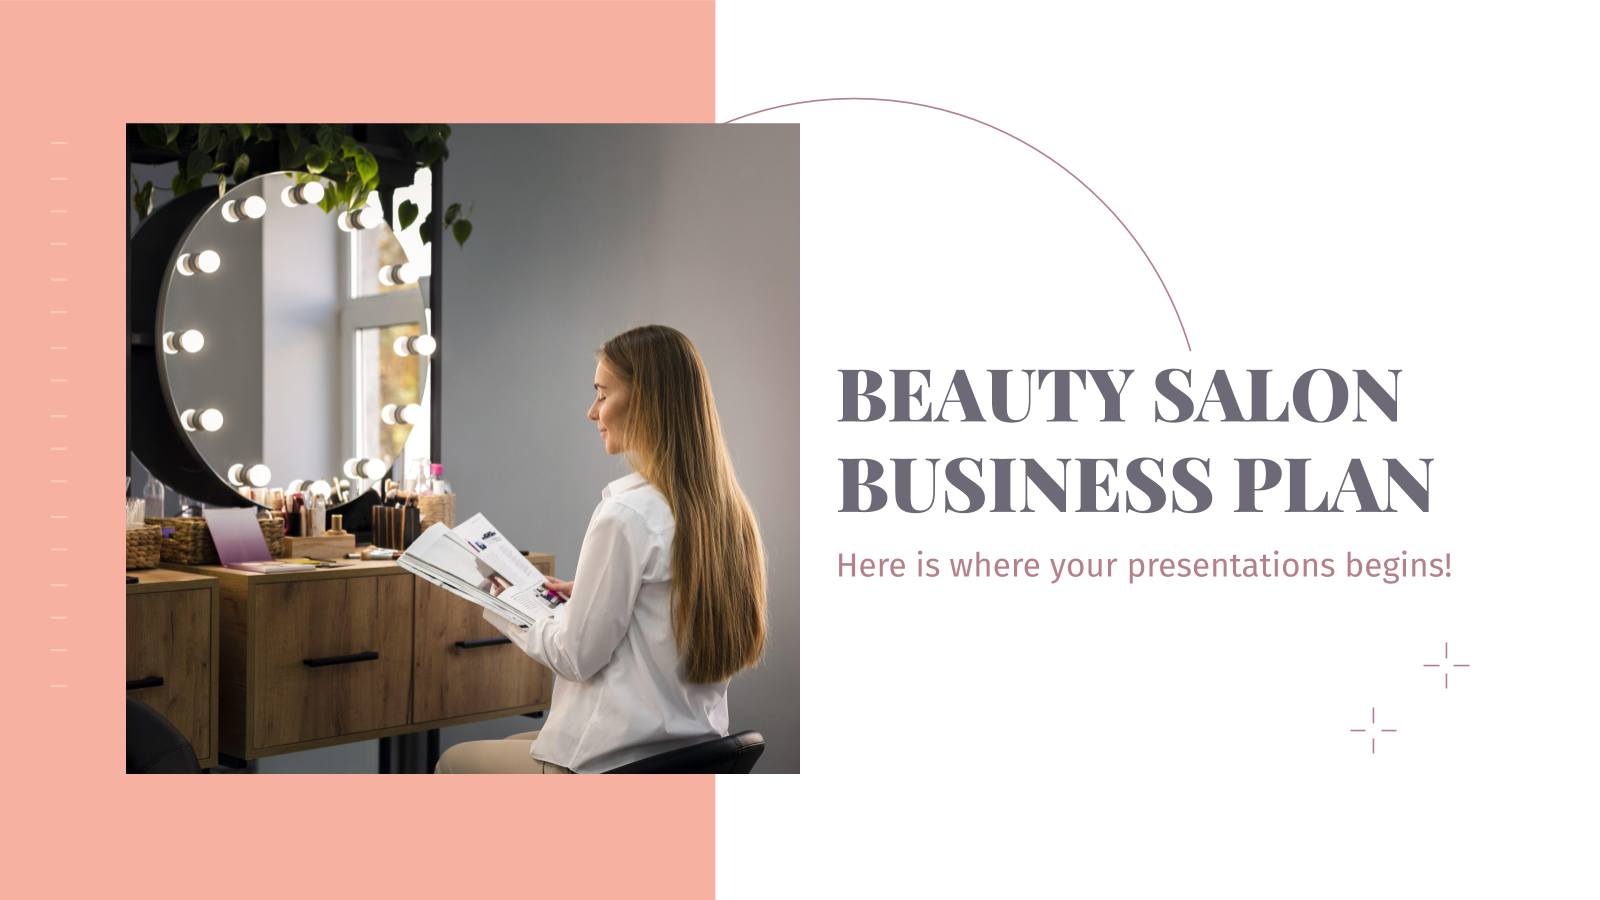 Beauty Salon Business Plan presentation template